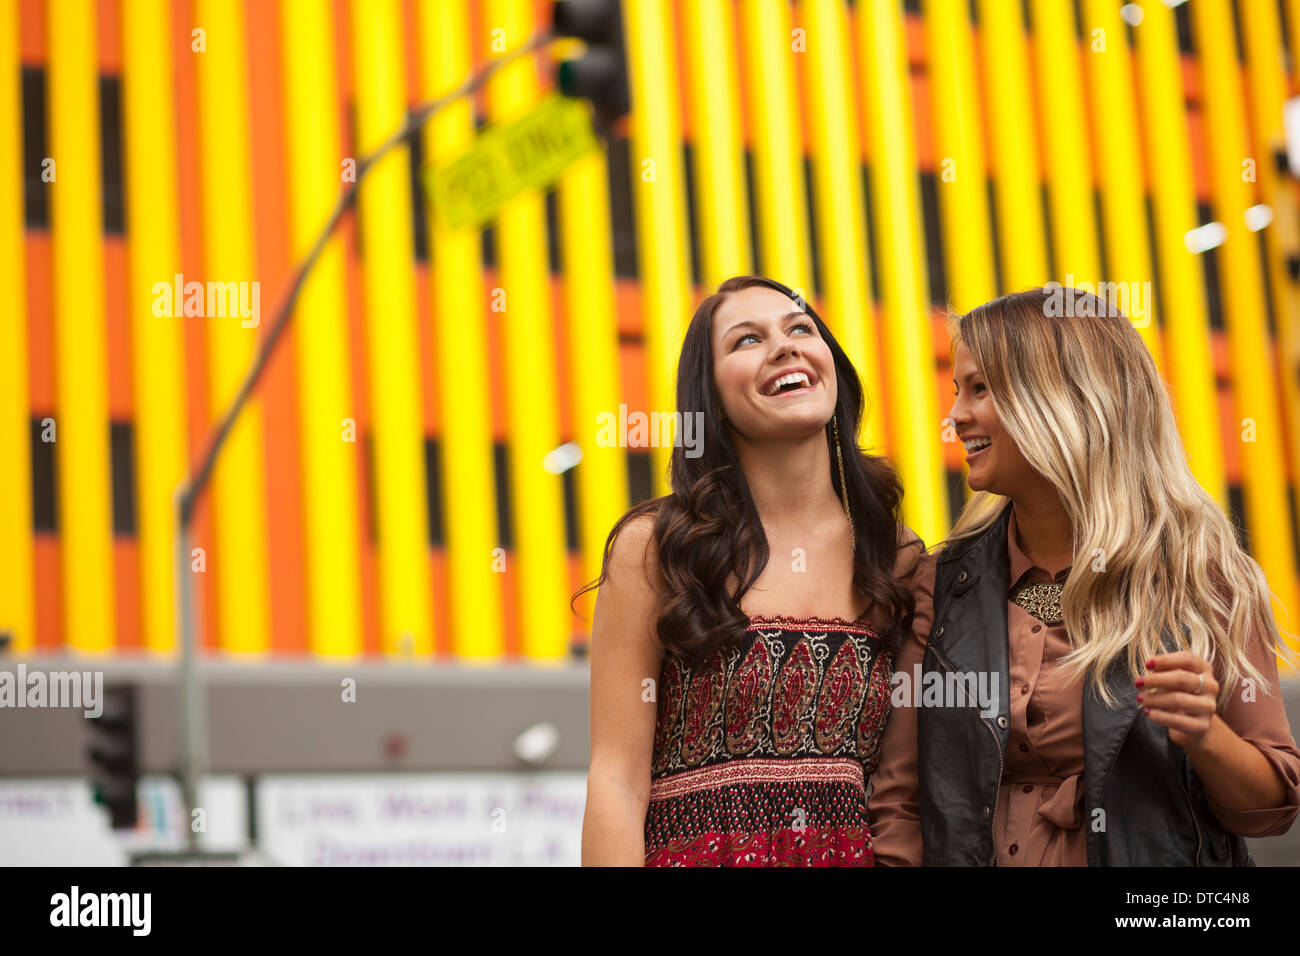 Young women enjoying city life - Stock Image